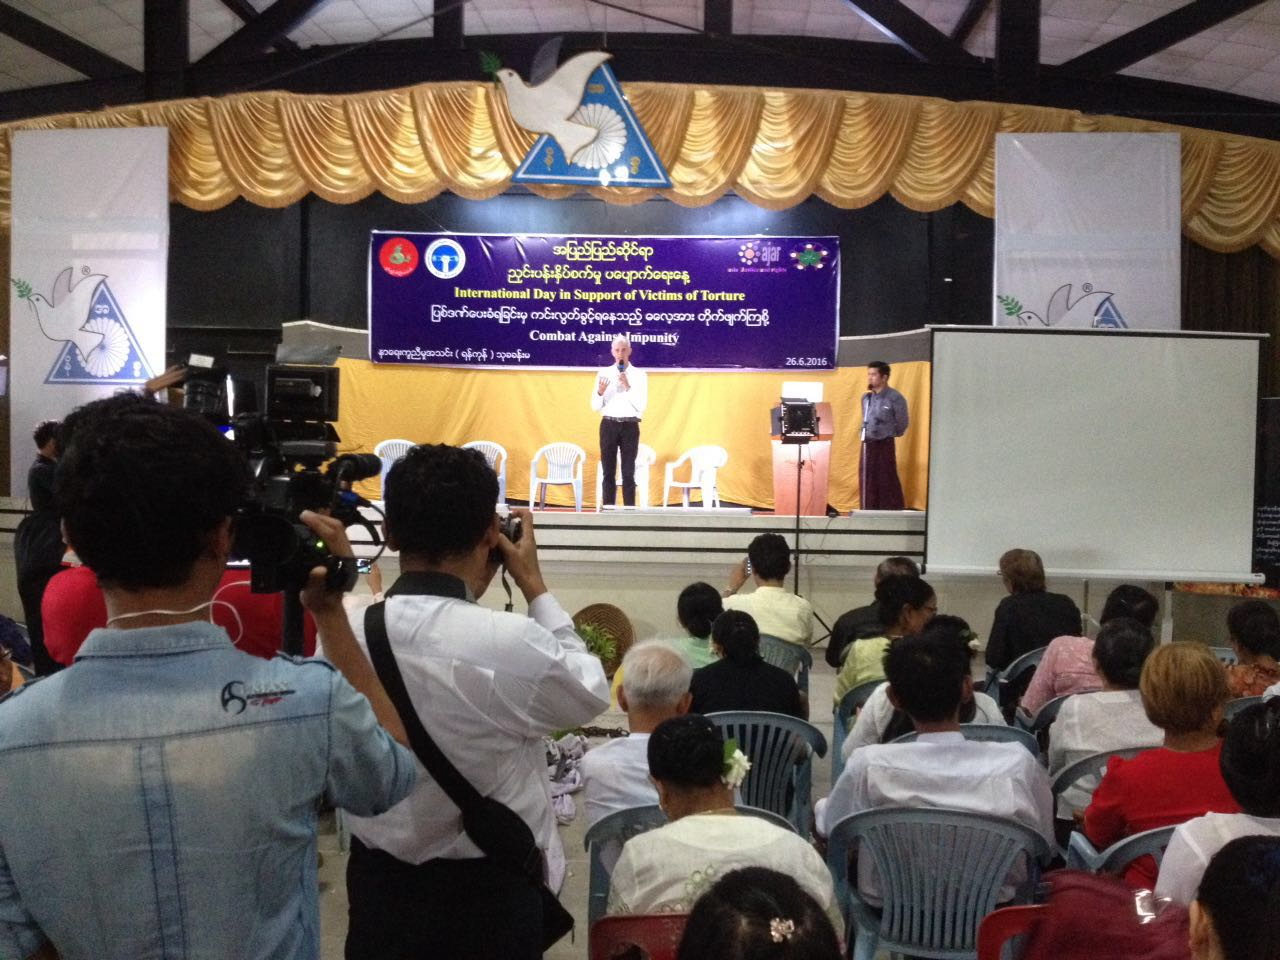 AJAR Myanmar Commemorating International Day in Support of Victims of Torture